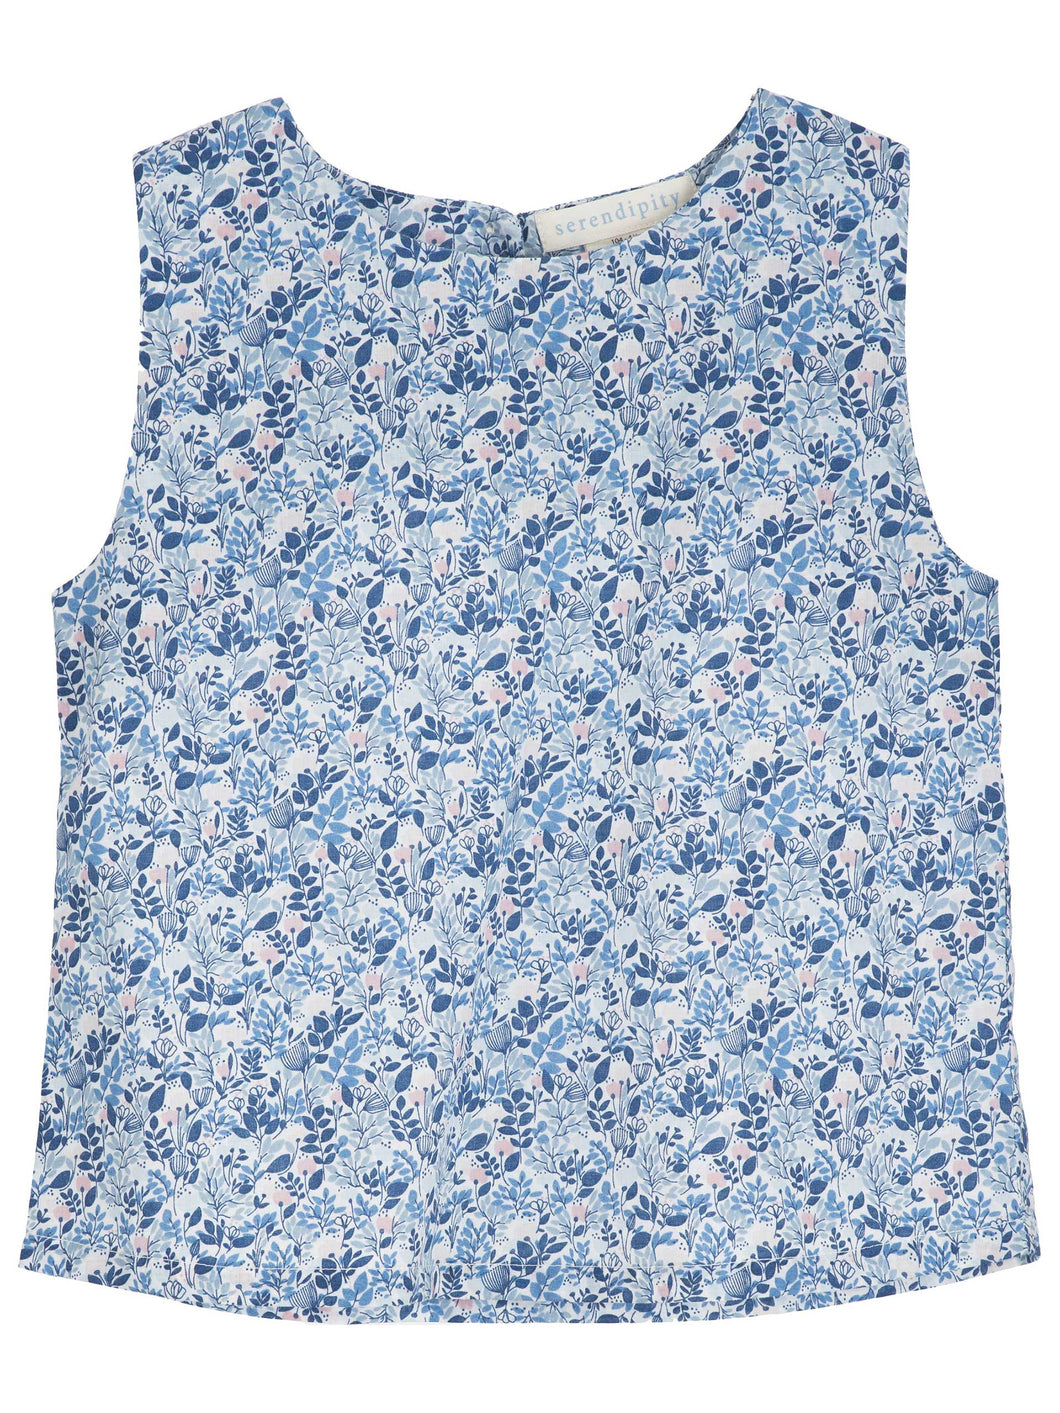 Serendipity Tank Top - Flowerfield